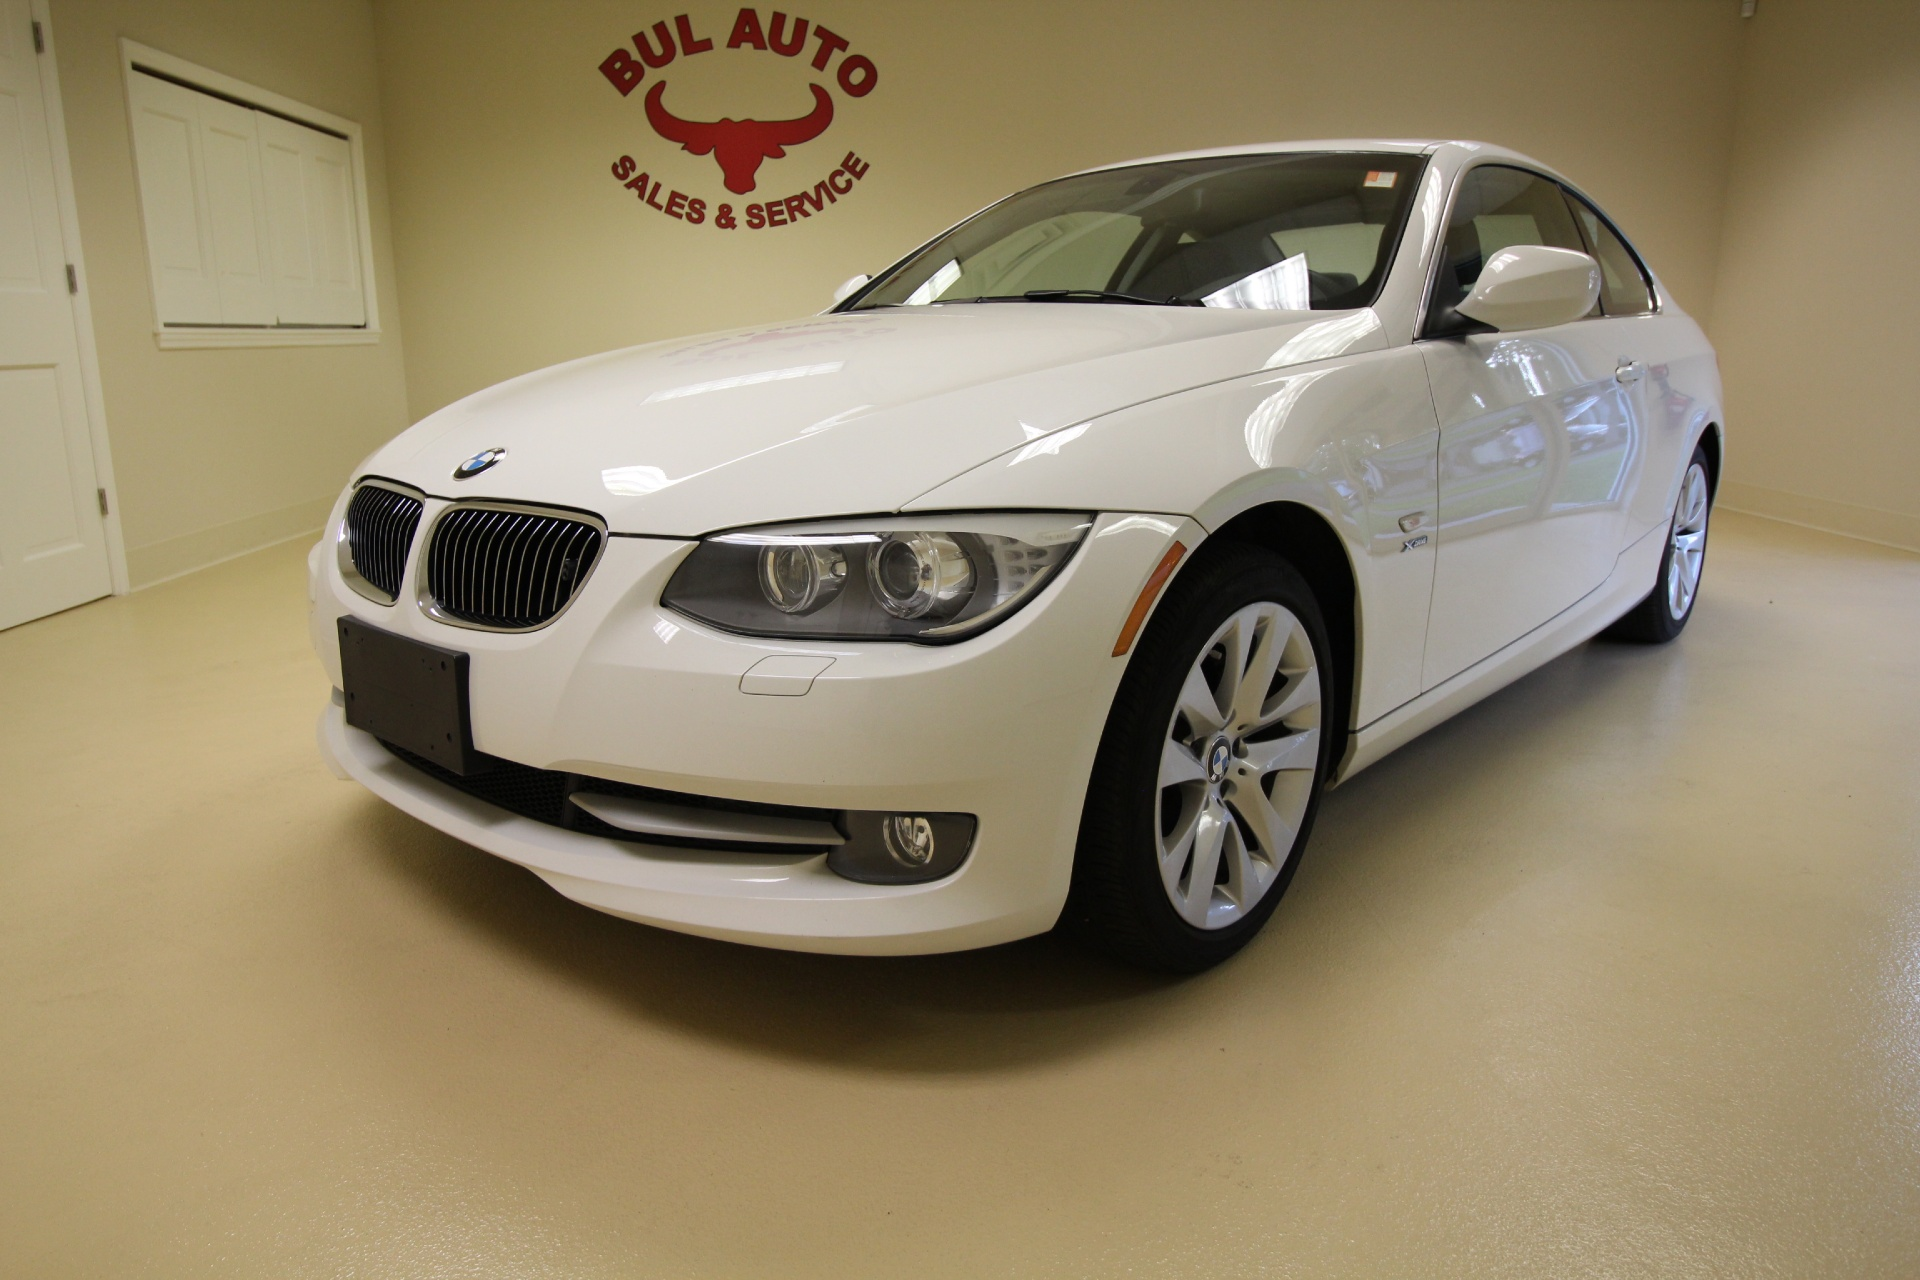 s sportline halos premium xenons for loaded main sale used series c led cold htm navigation wthr l xdrive bmw halo